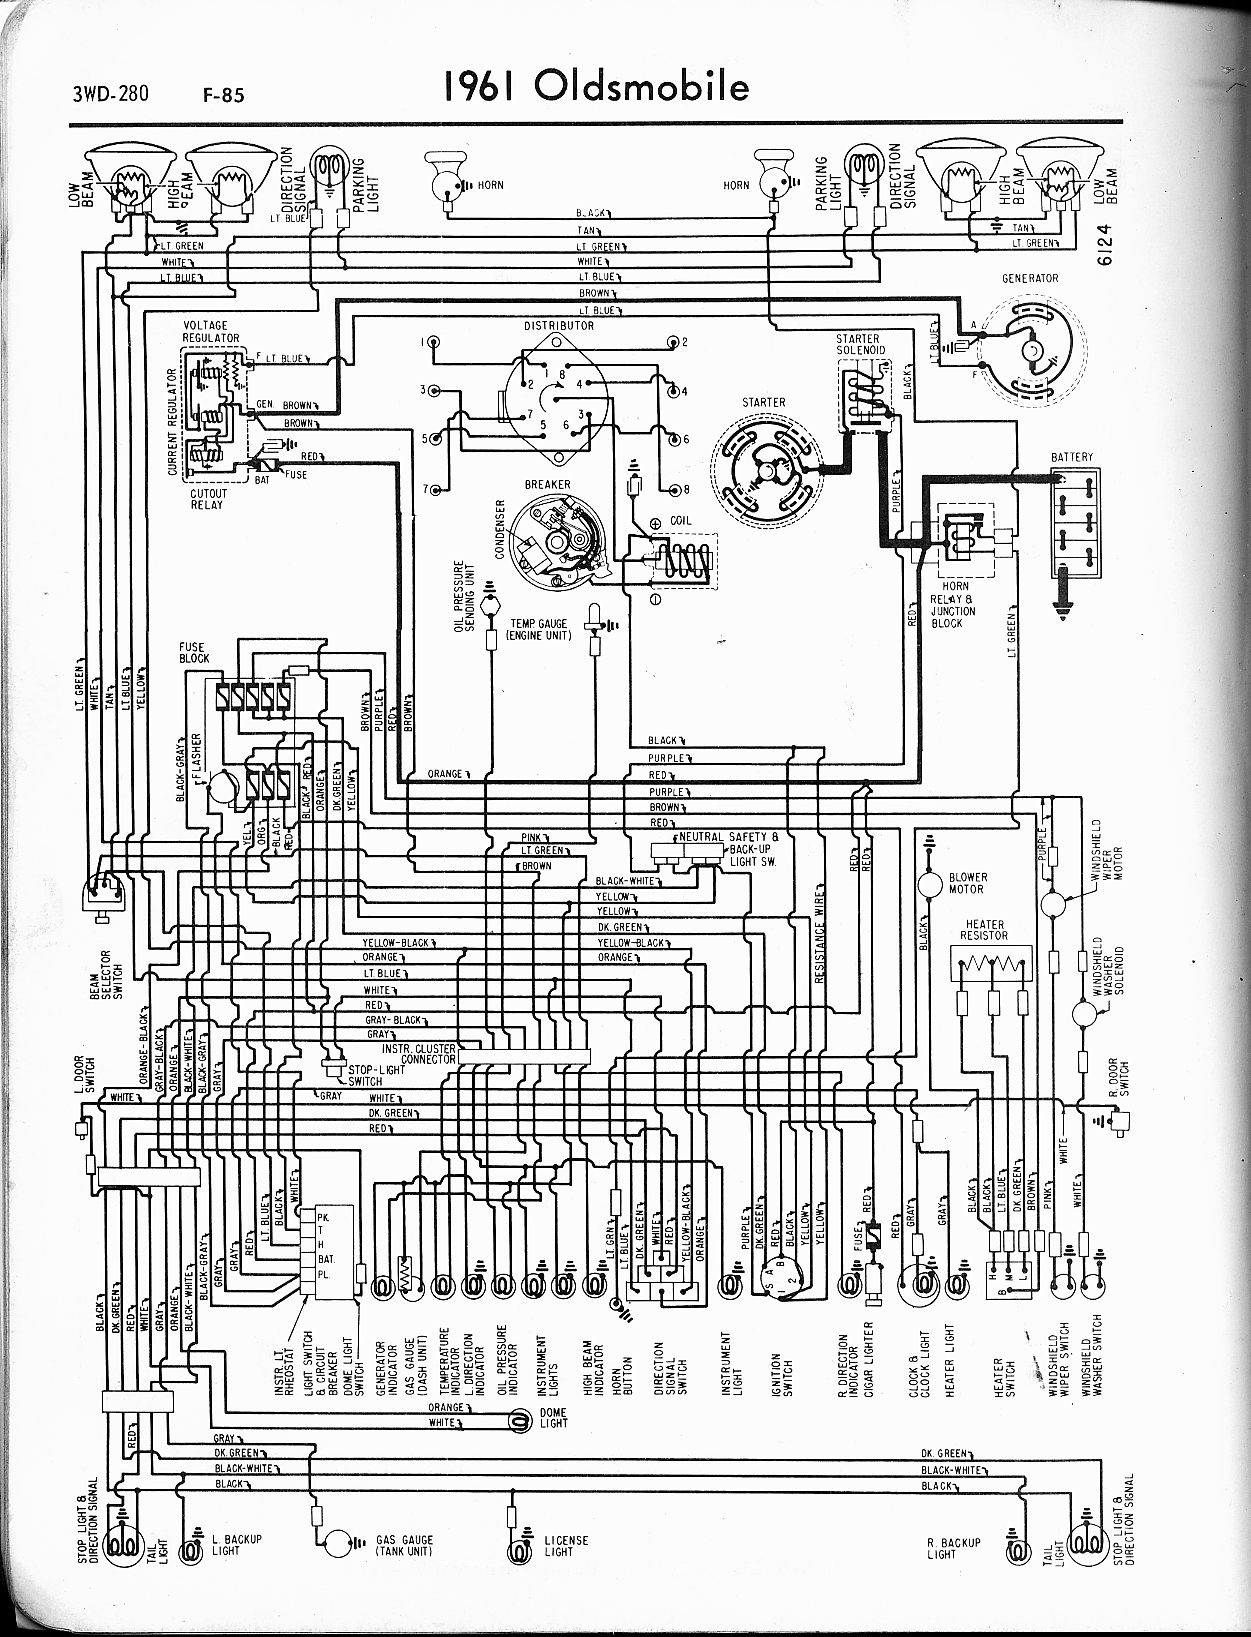 MWire5765 280 oldsmobile wiring diagrams the old car manual project 1984 oldsmobile delta 88 wiring diagram at soozxer.org